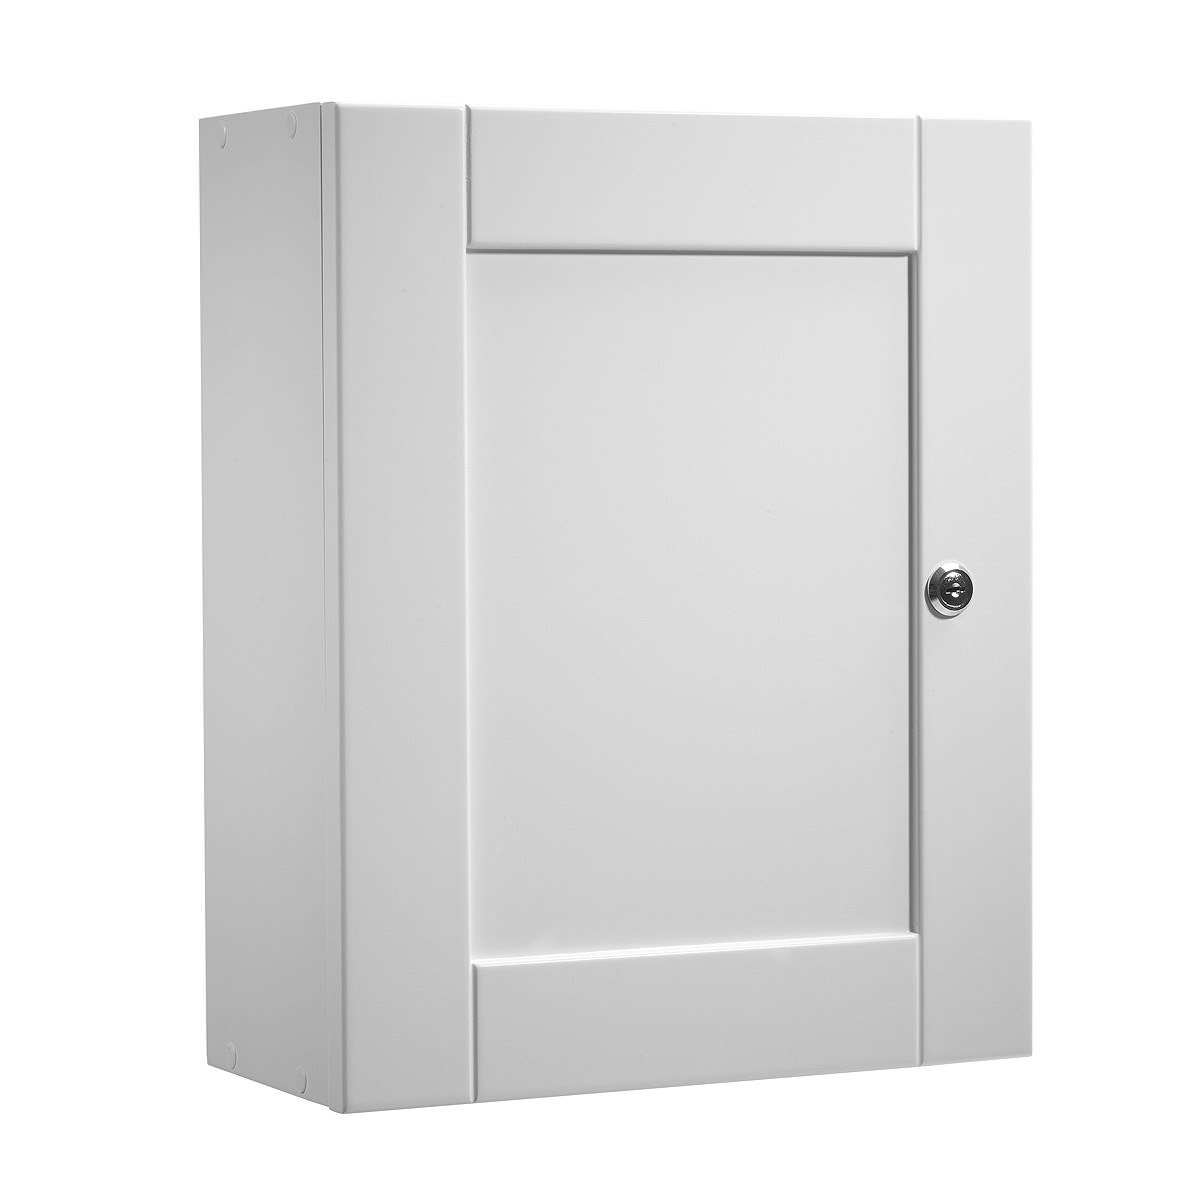 Permalink to Lockable Bathroom Wall Cabinet